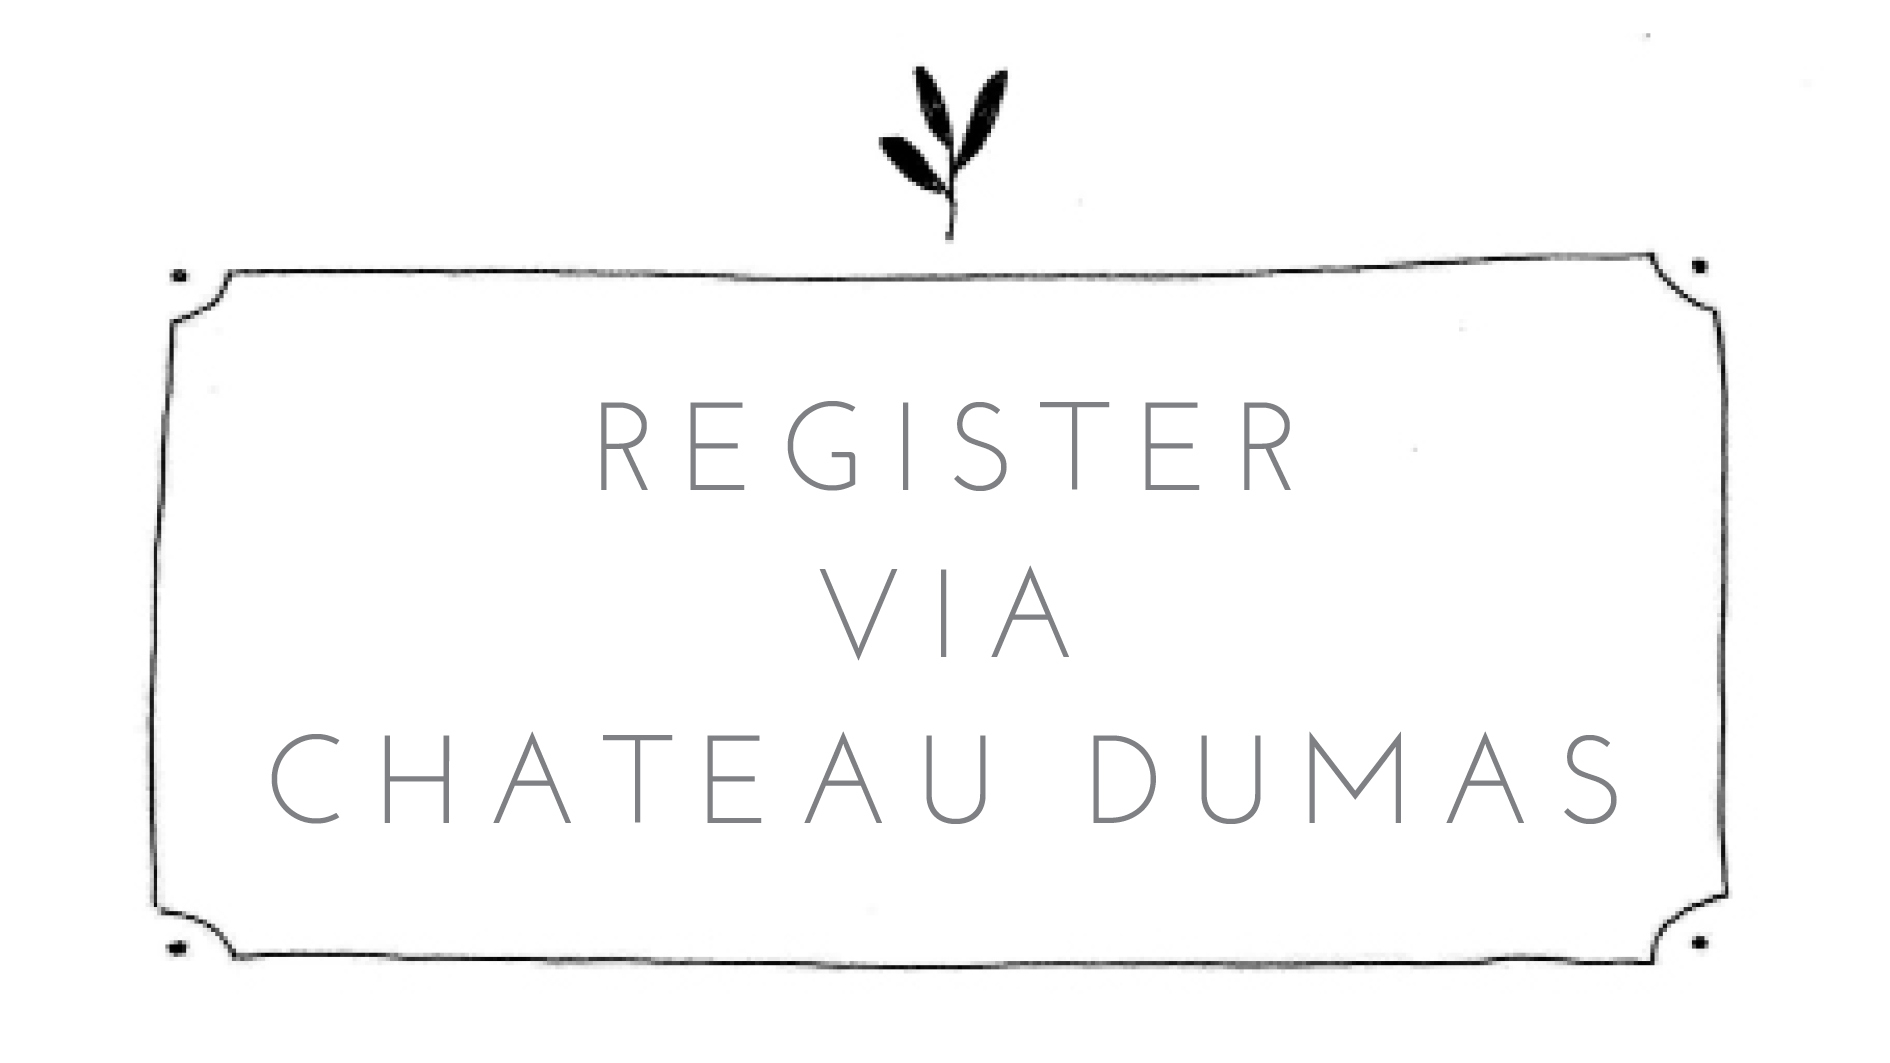 makerie registration via chateau dumas.jpg